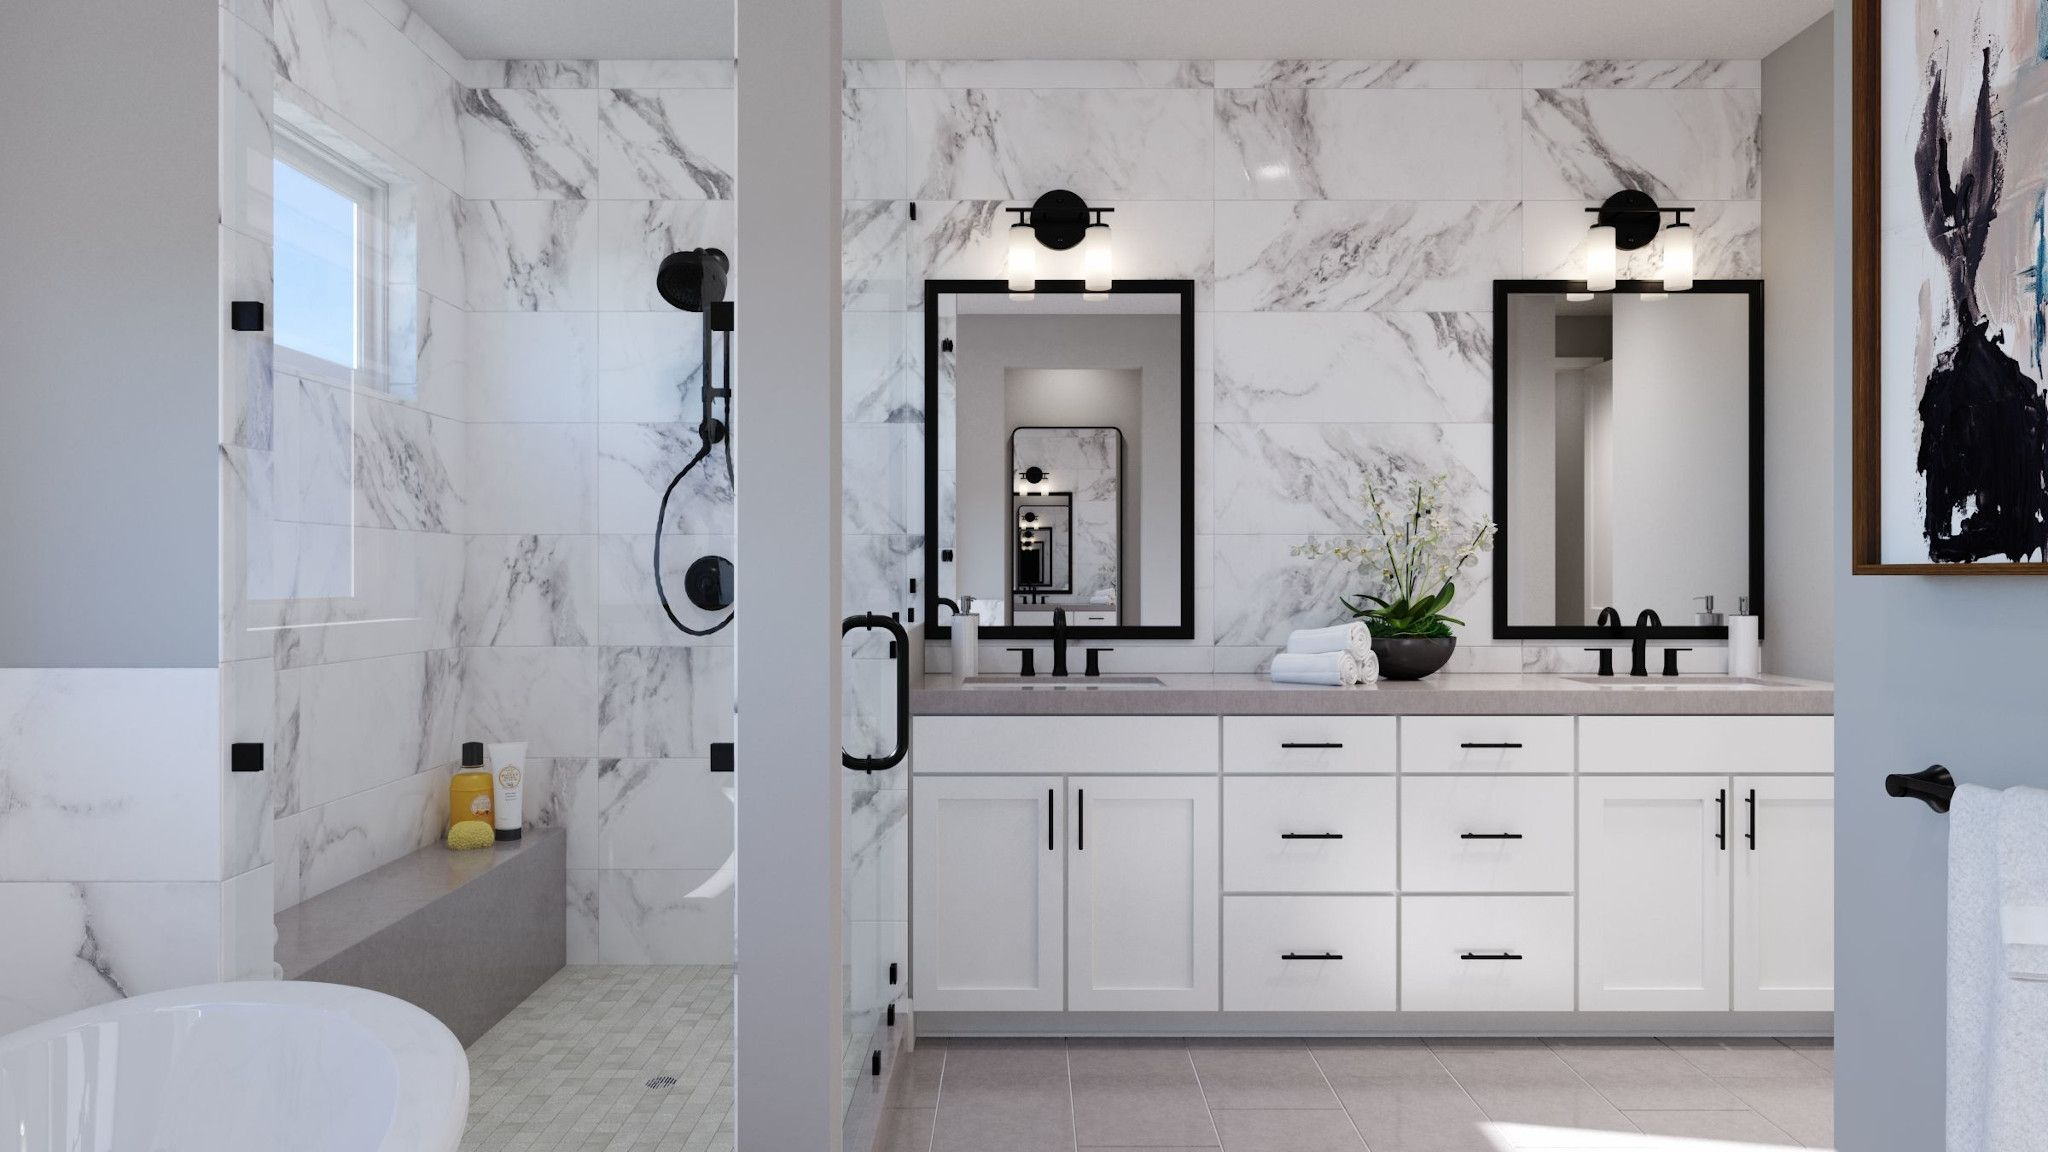 Bathroom featured in the 5099 The Walton By Shea Homes in Denver, CO